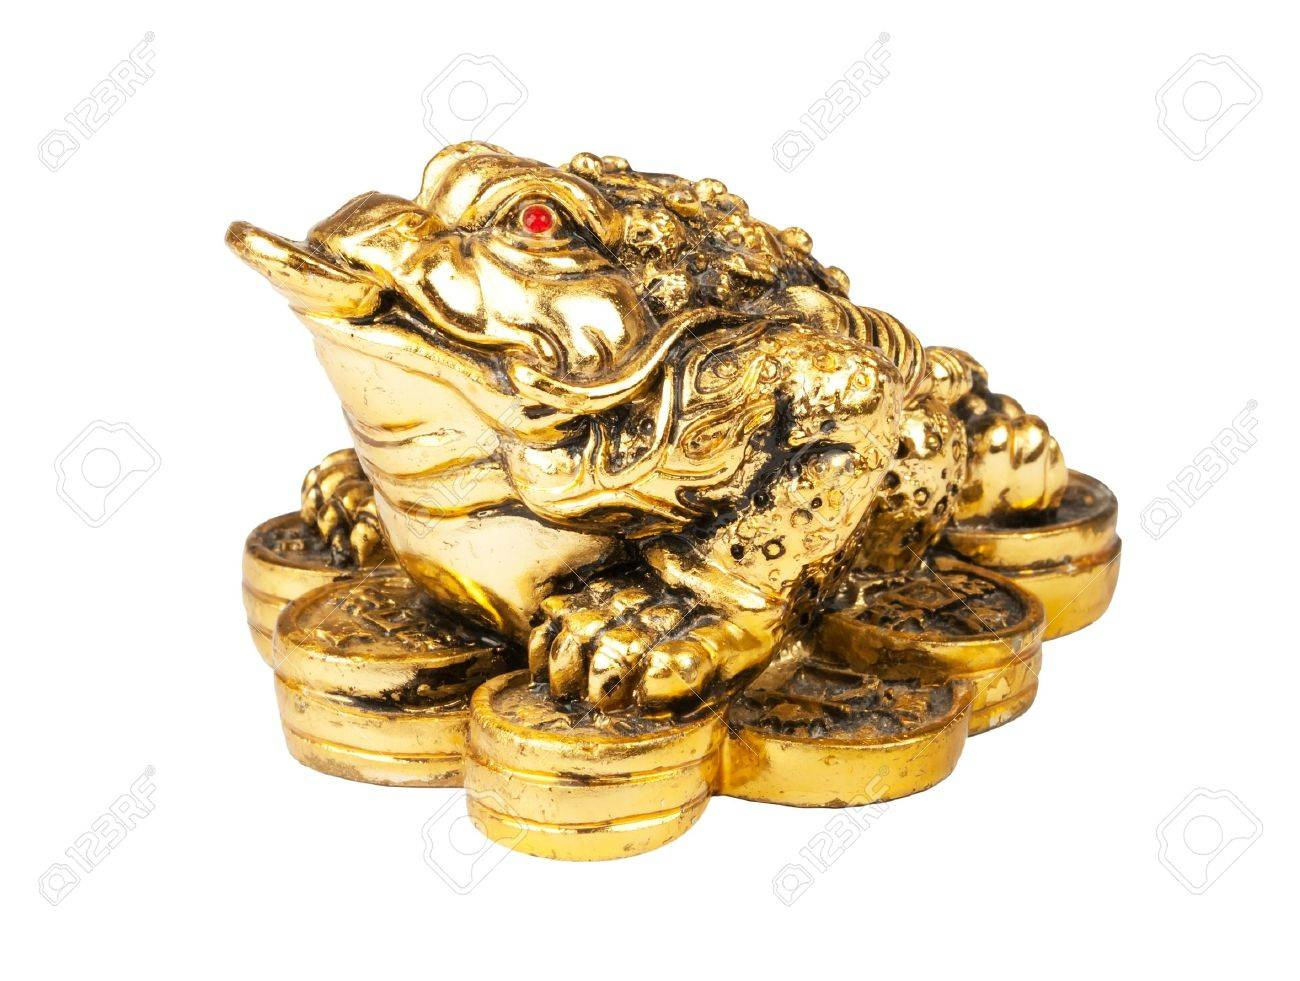 Chinese Feng Shui Frog With Coins Symbol Of Money And Wealth Stock